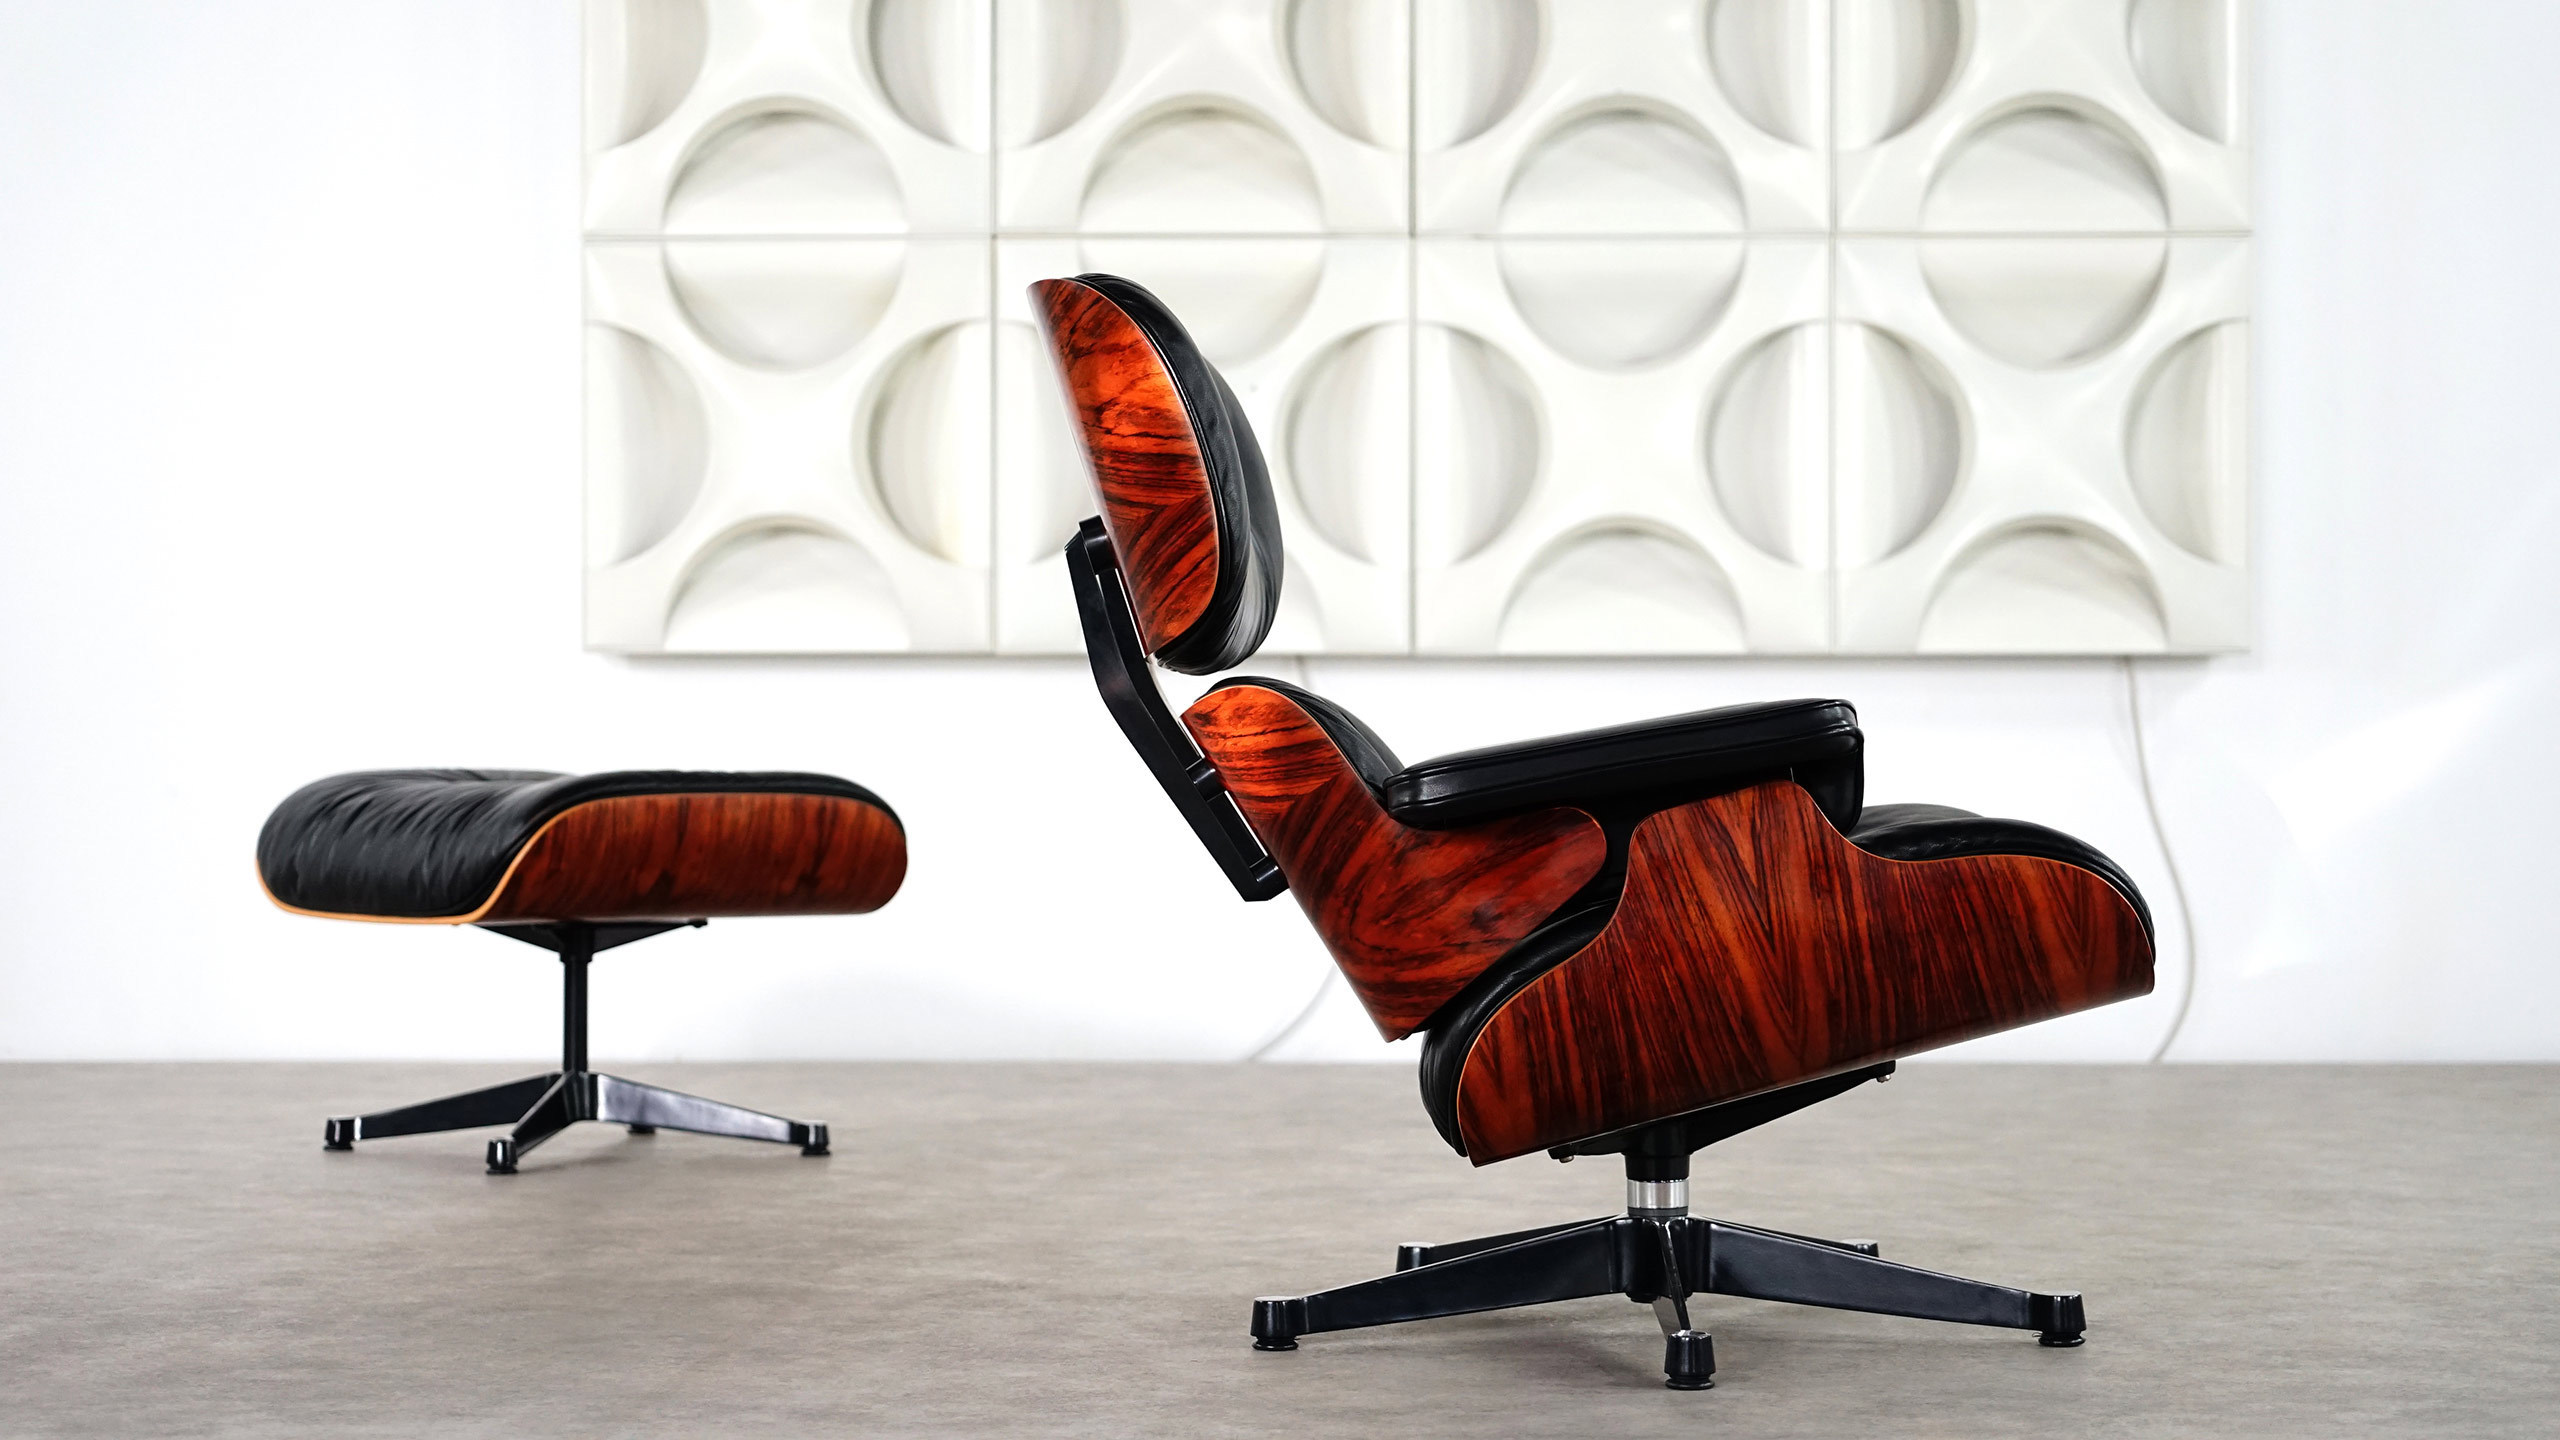 Charles Eames Lounge Chair & Ottoman by Vitra